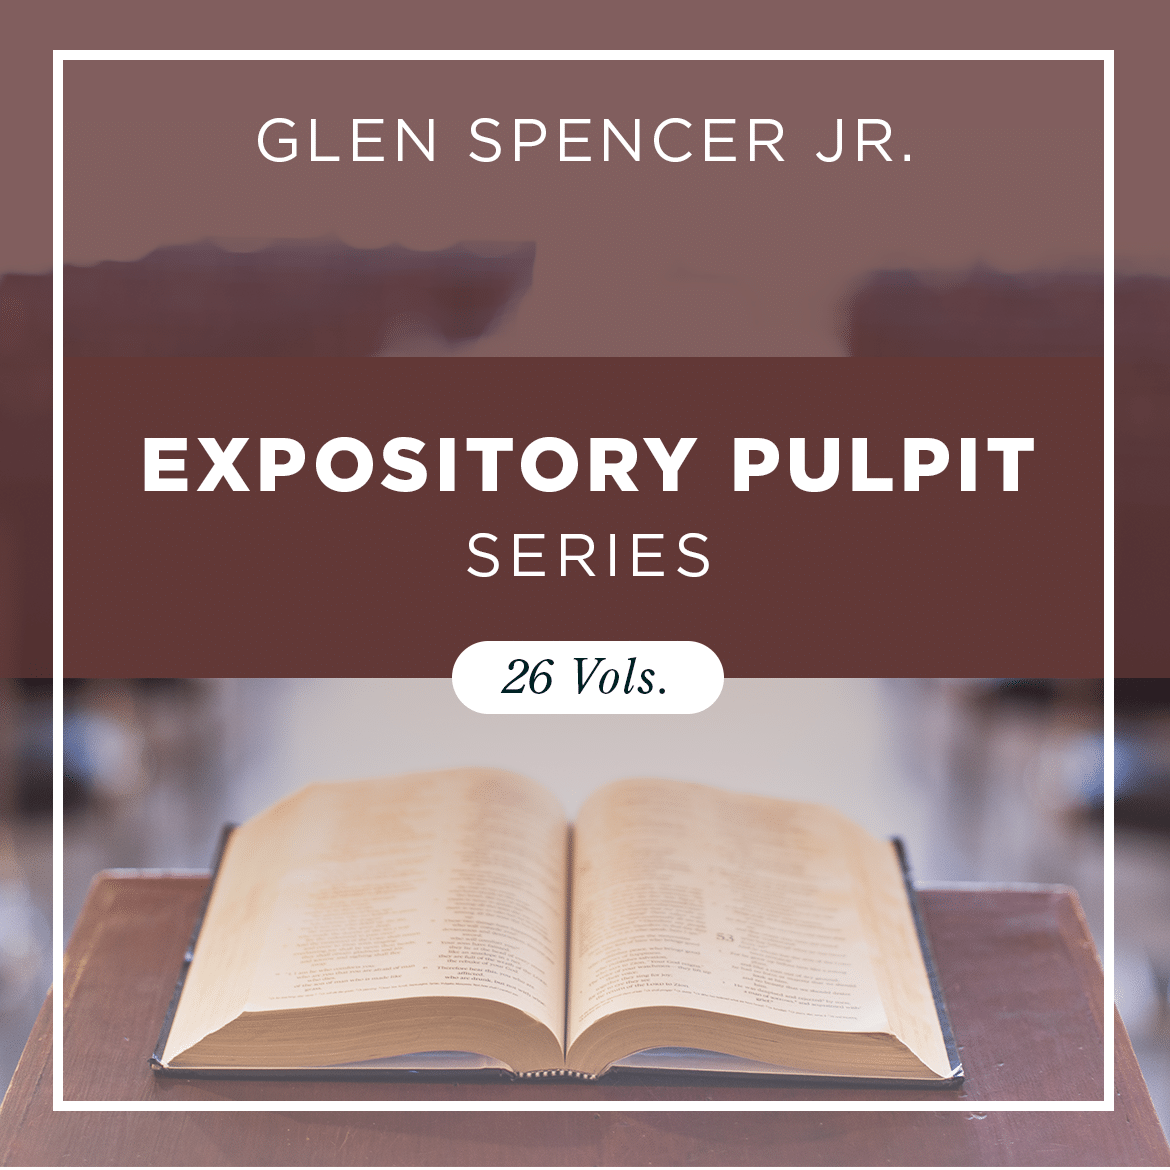 Expository Pulpit Series (26 vols.)